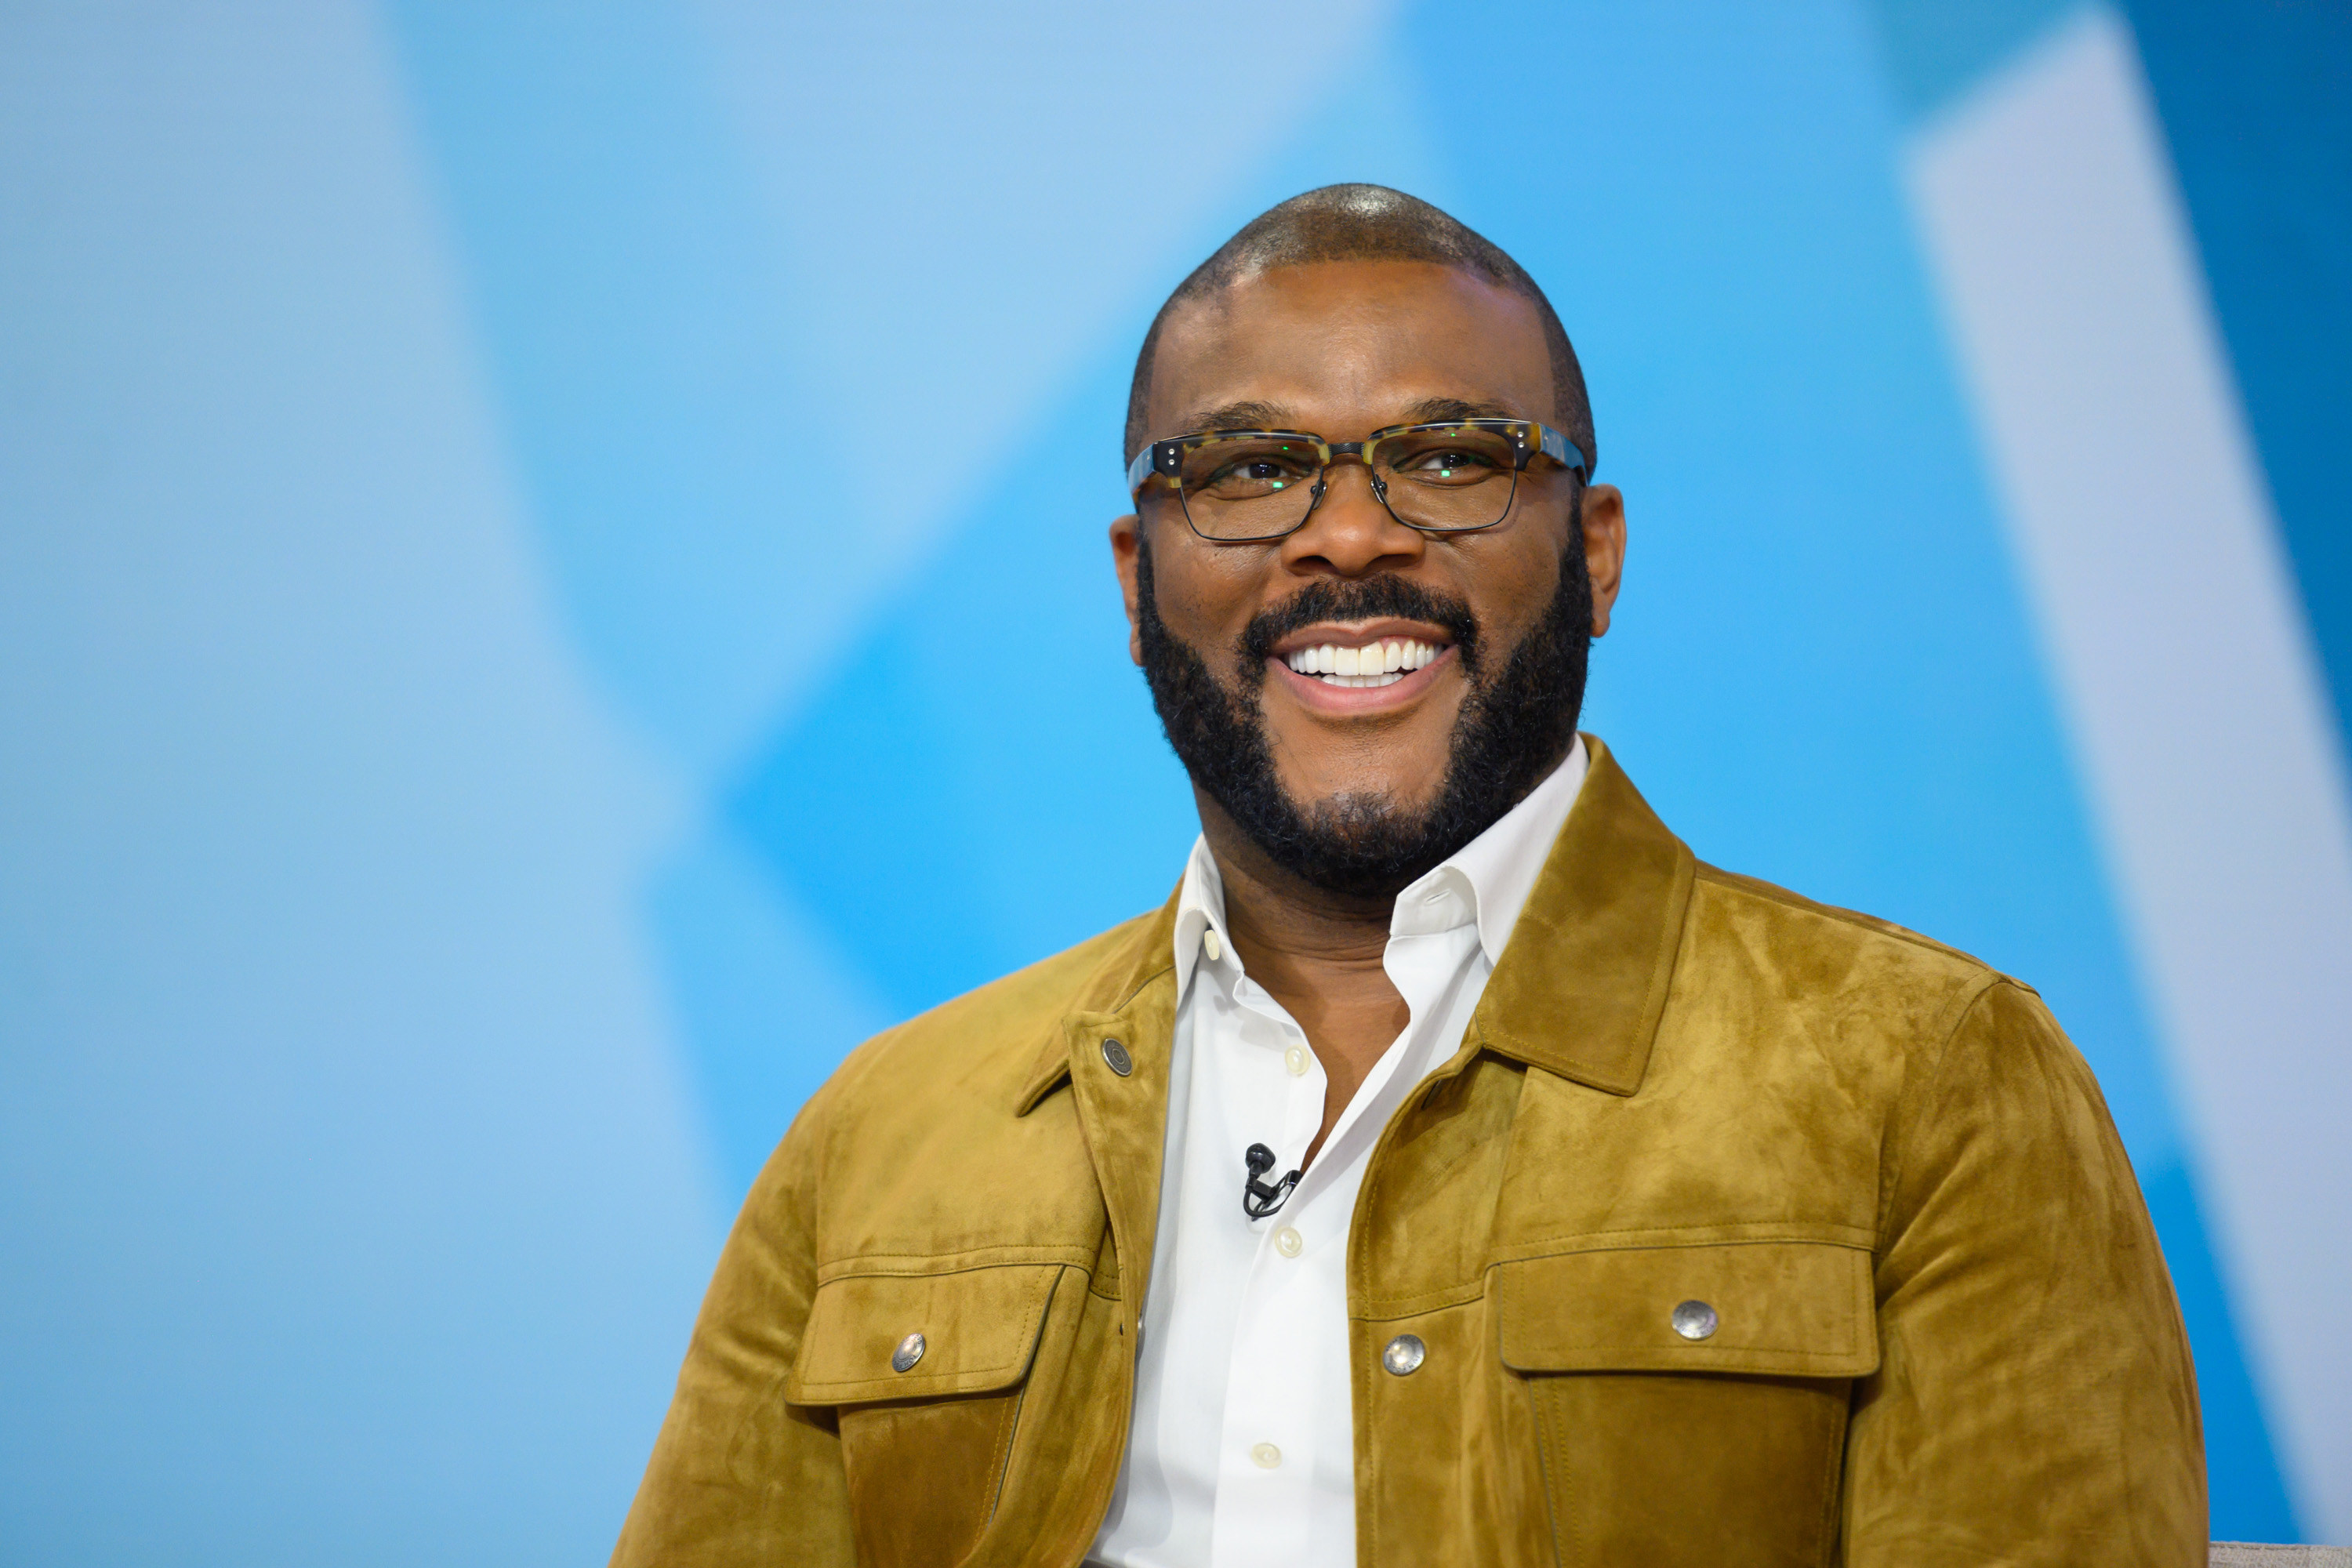 Tyler Perry appearing on TODAY on Monday, January 13, 2020